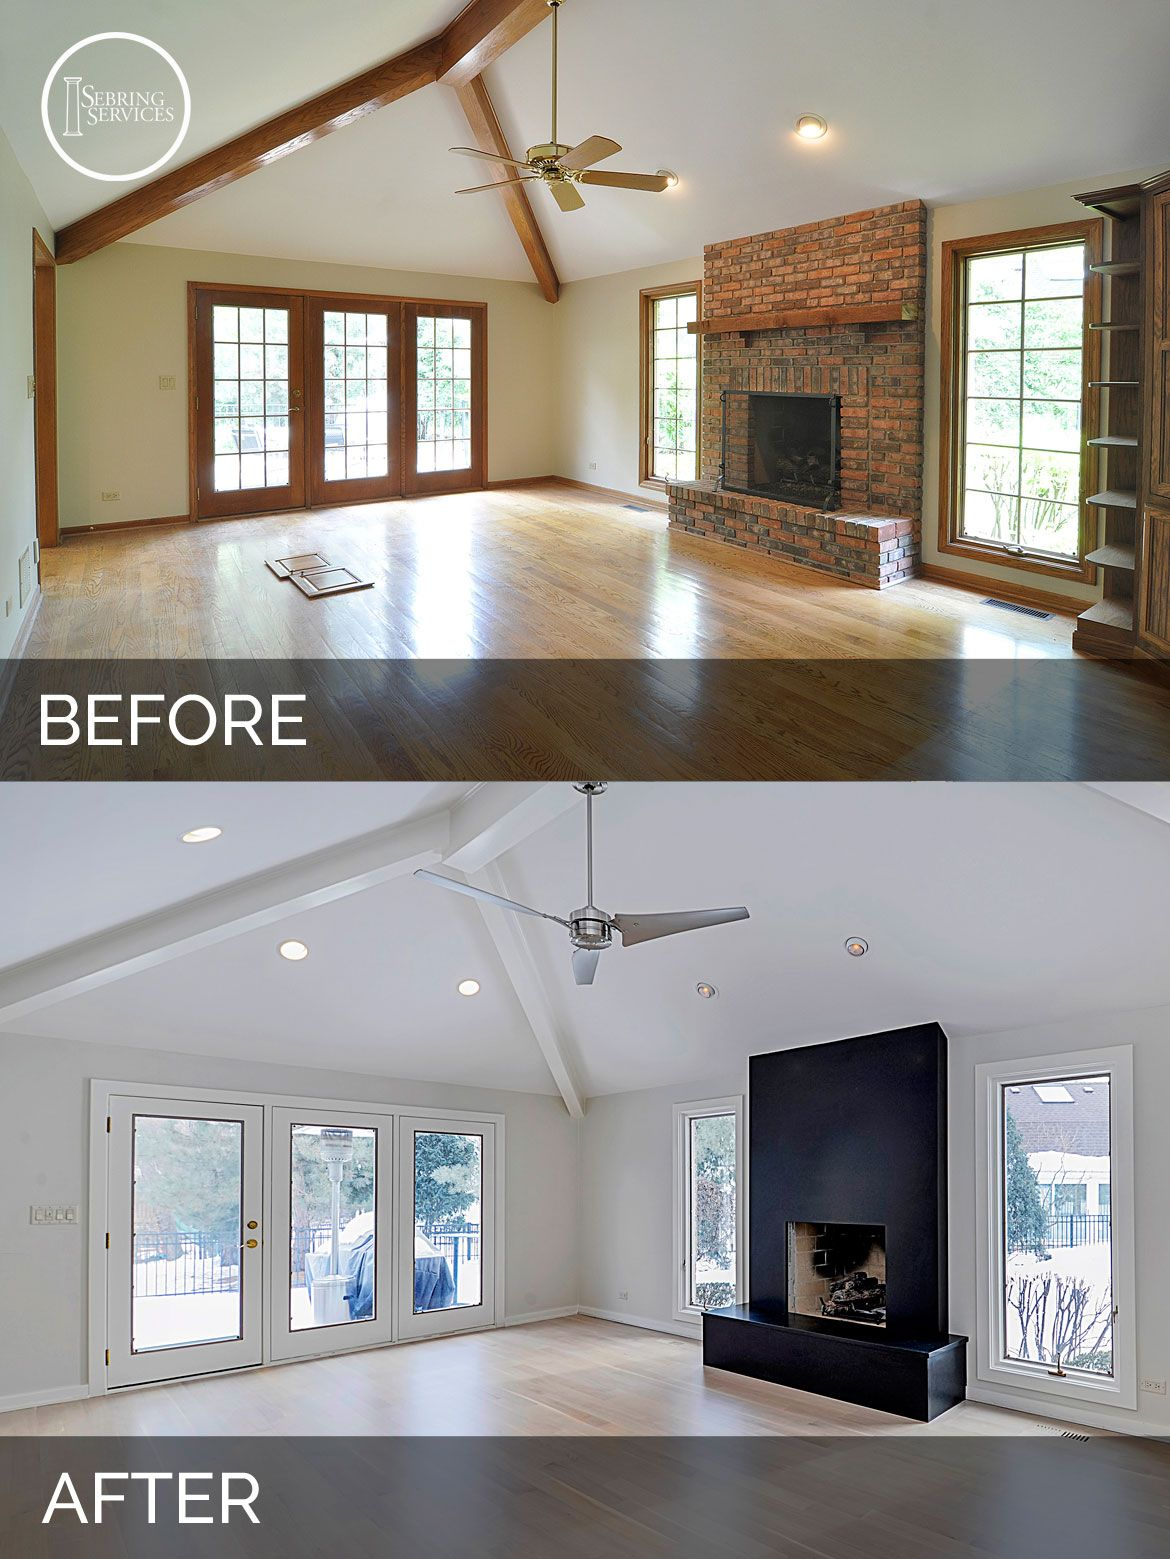 Renovated Farmhouse Before And After Jeff And Betsy 39s Kitchen Before And After Pictures Kitchens